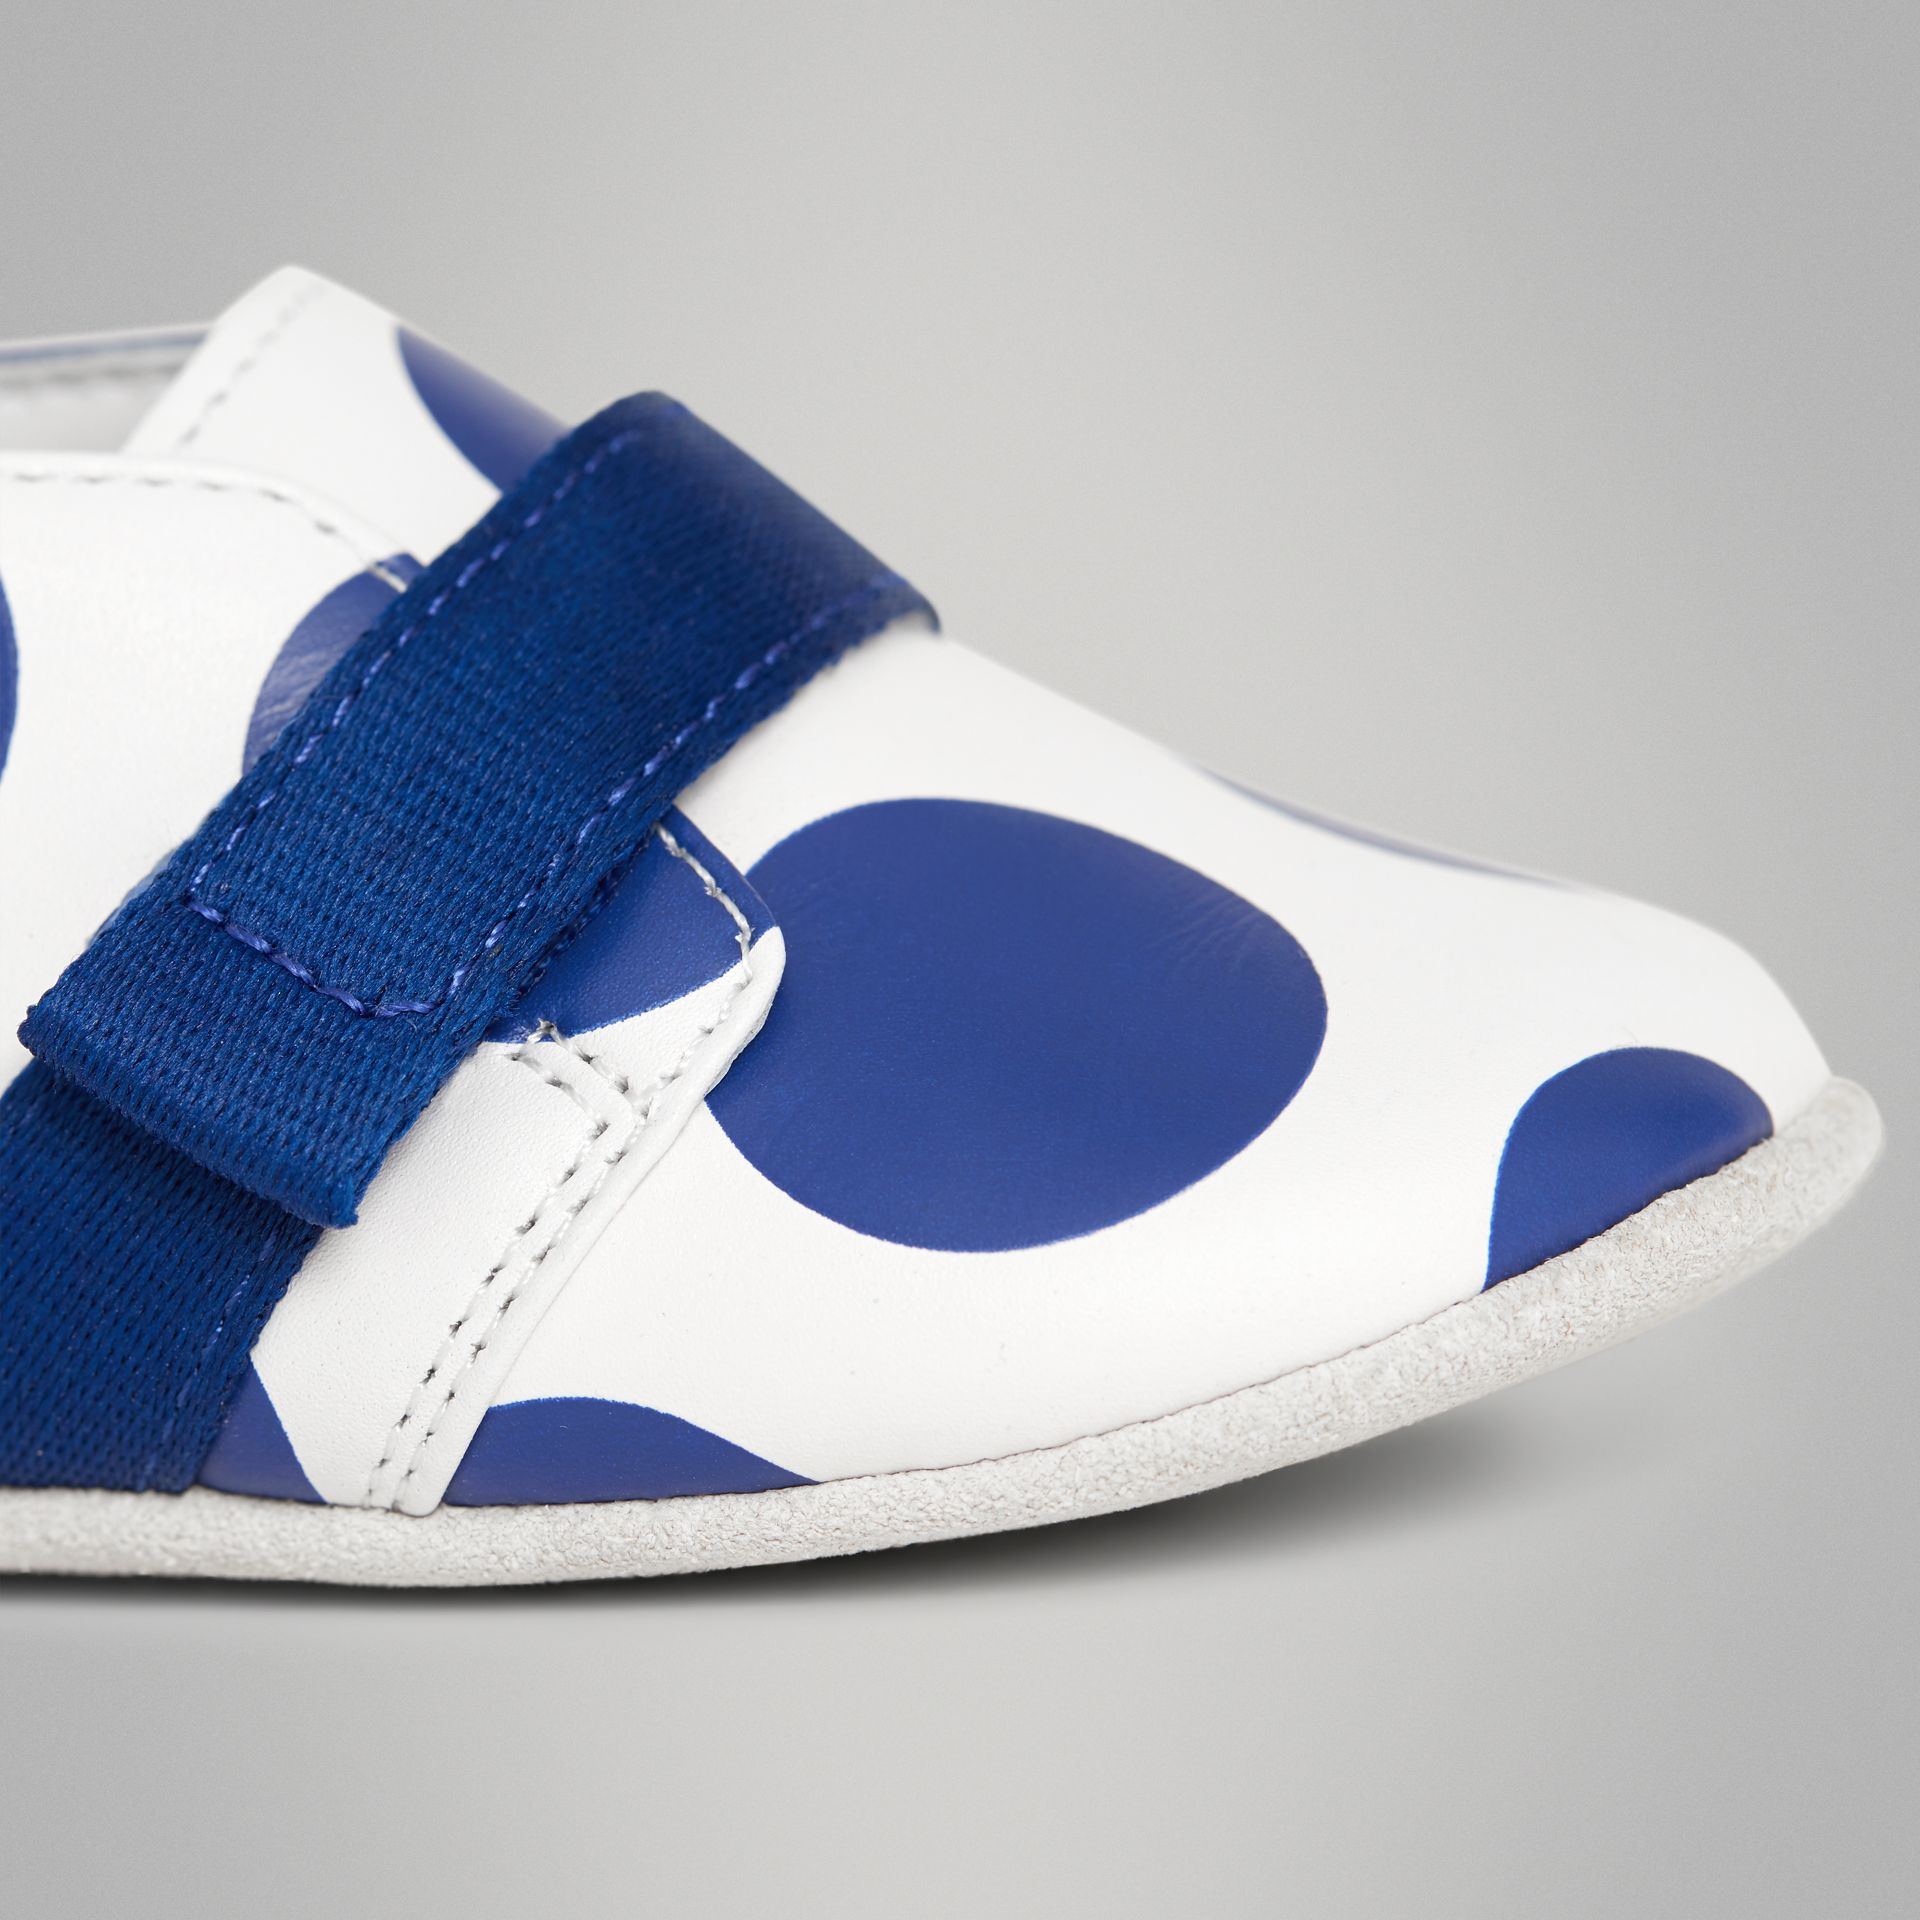 Spot Print Leather Shoes in Bright Blue - Children | Burberry United Kingdom - gallery image 1